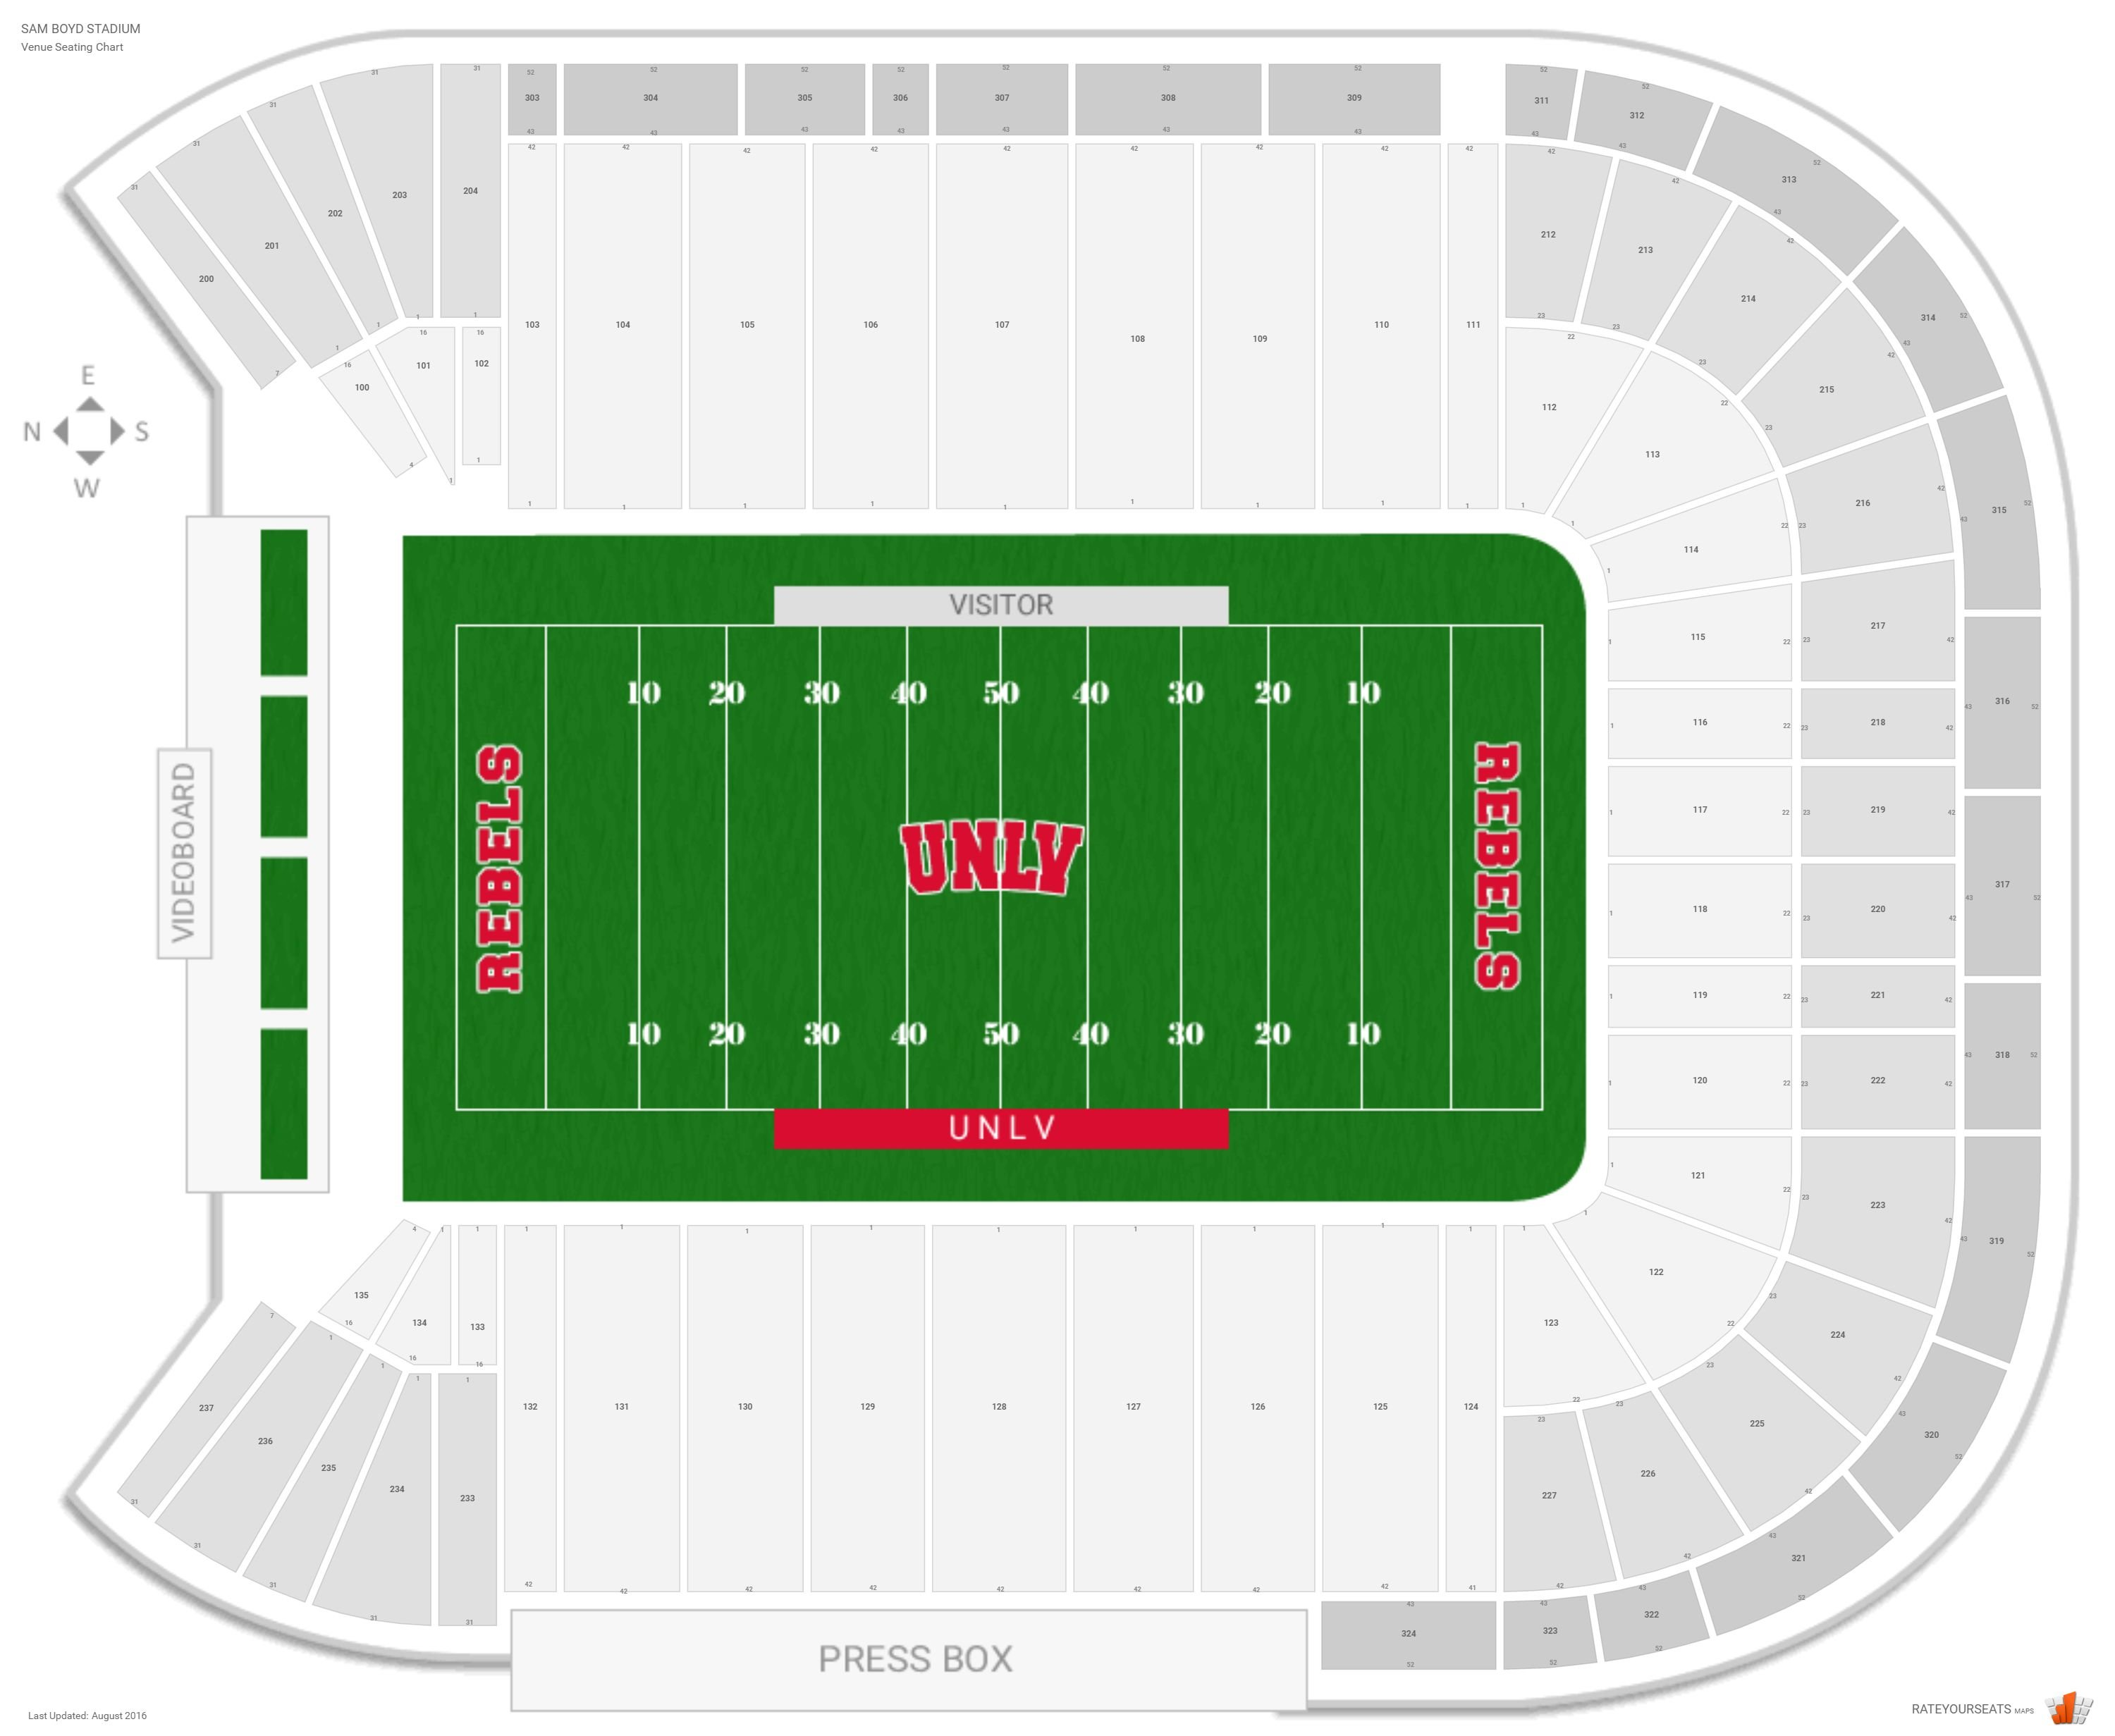 Sam Boyd Stadium Seating Chart With Row Numbers